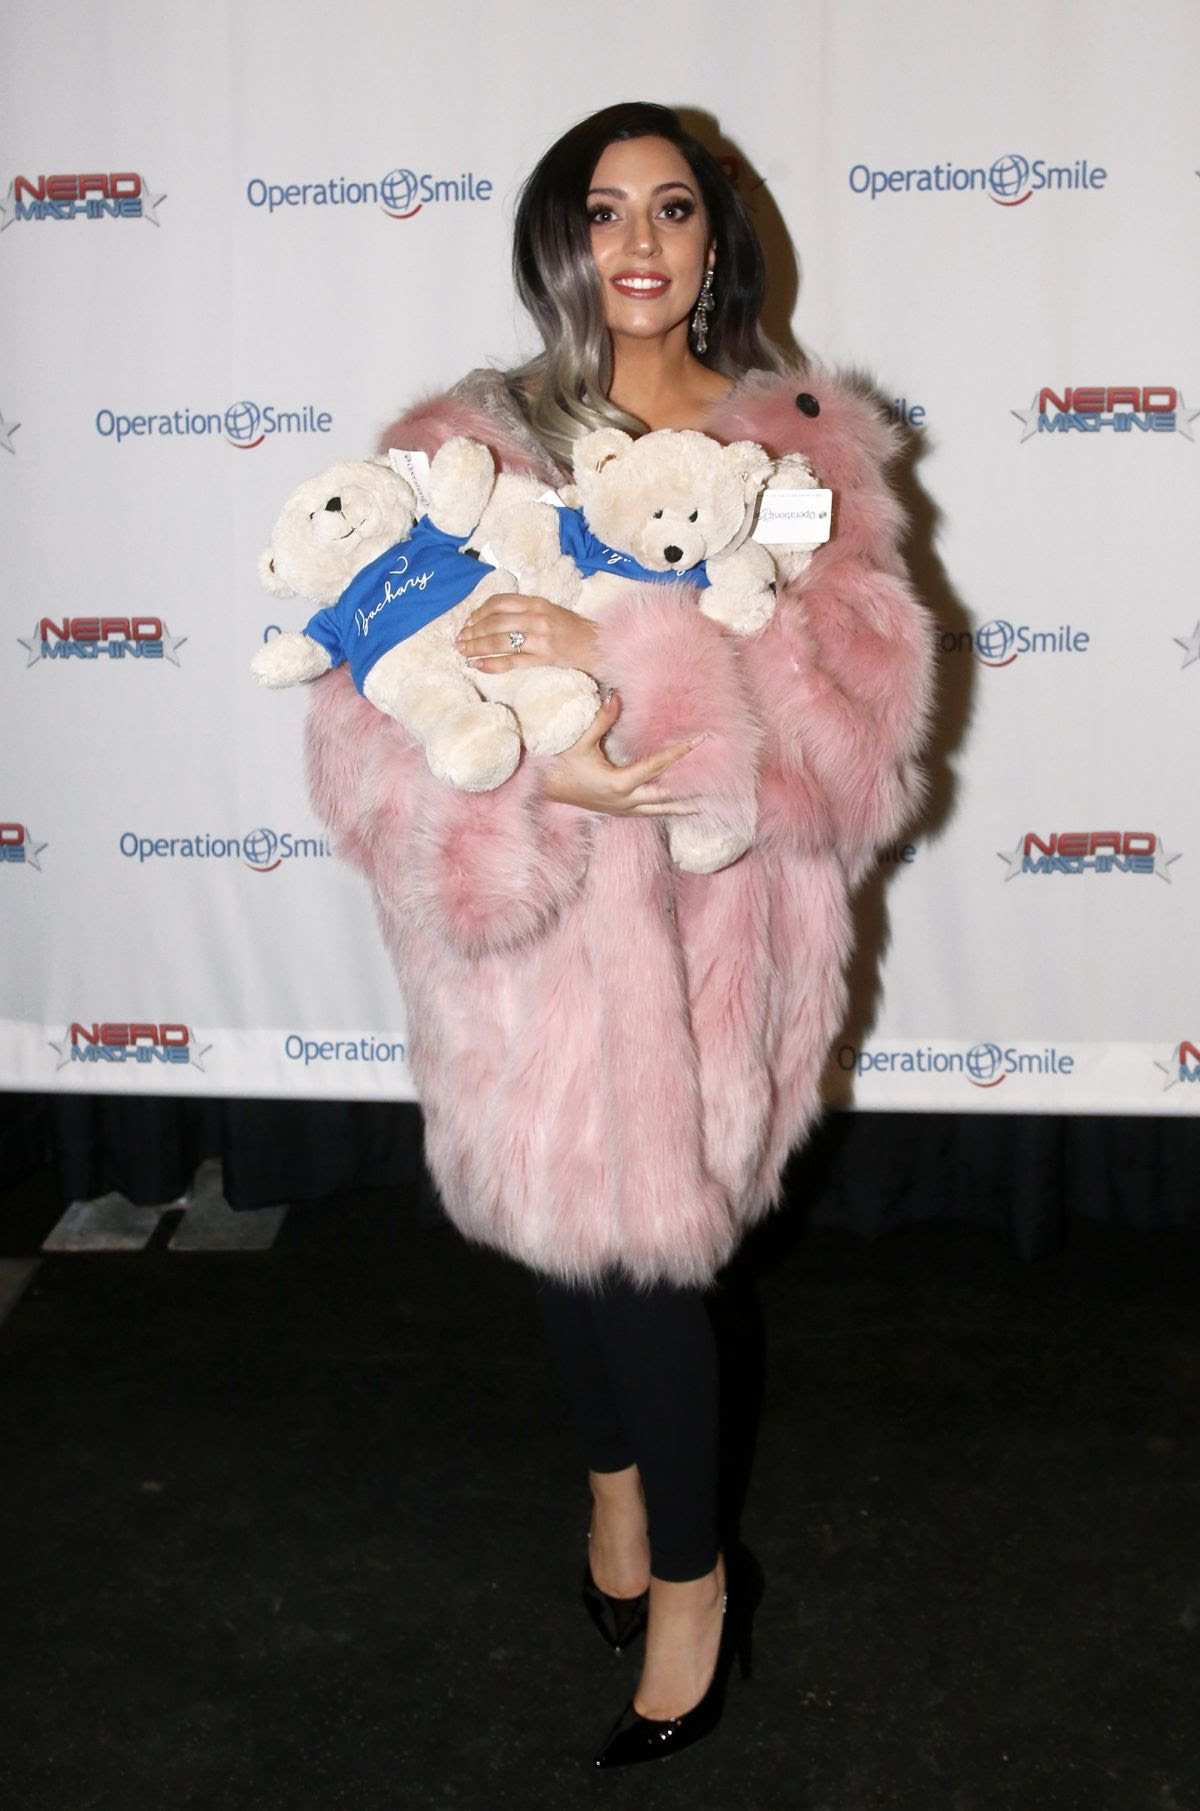 LADY GAGA at Operation Smile's Celebrity Ski & Smile Challenge in Utah